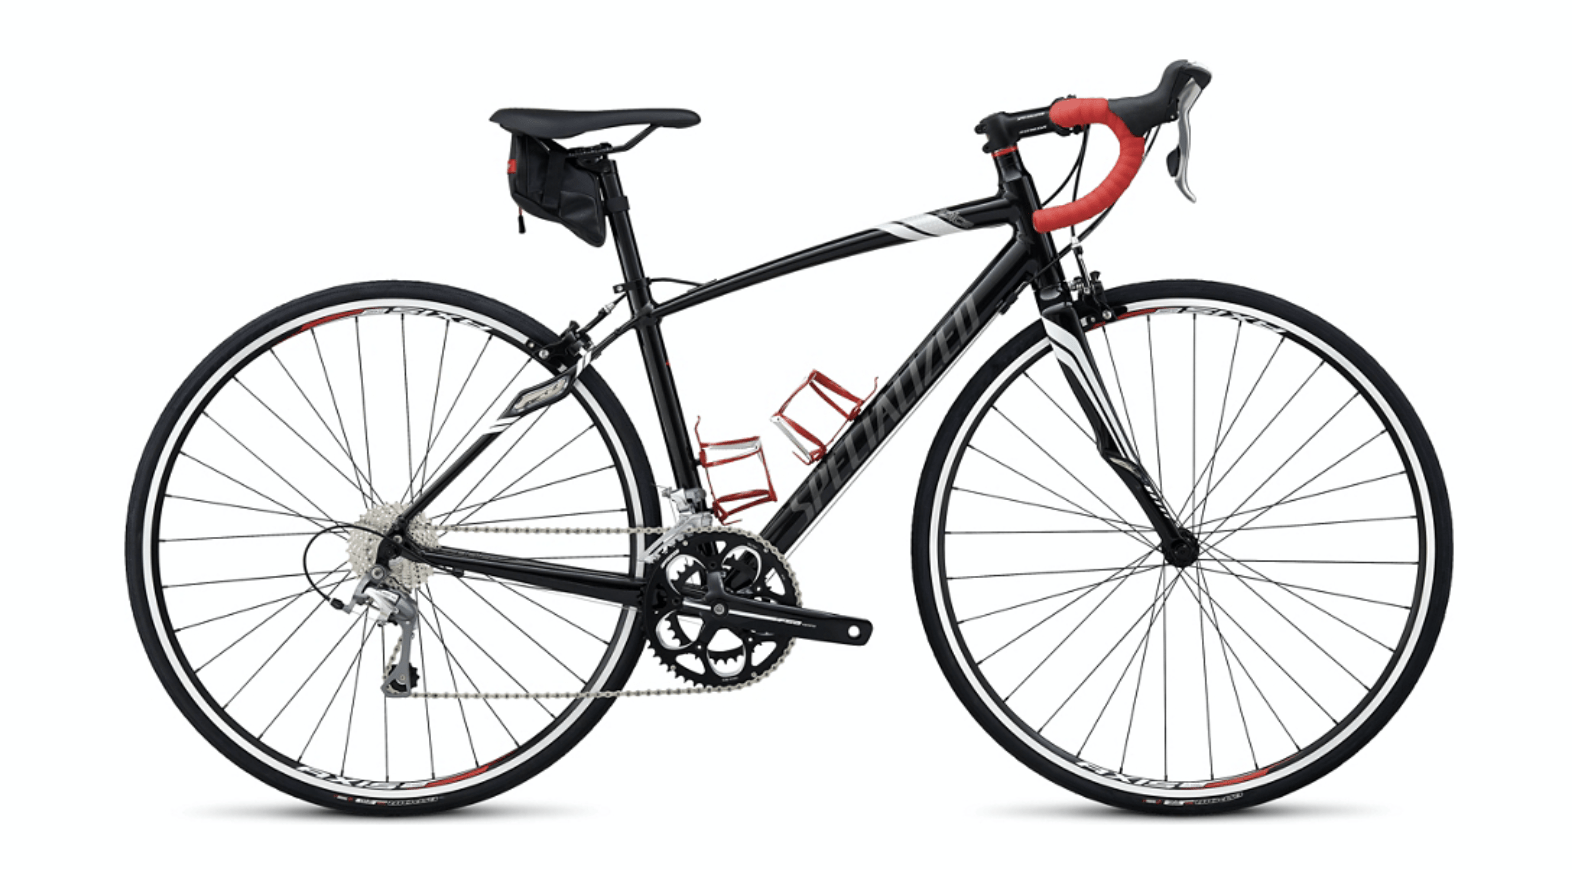 Stolen 2013 Specialized Dolce Elite Compact Equipped